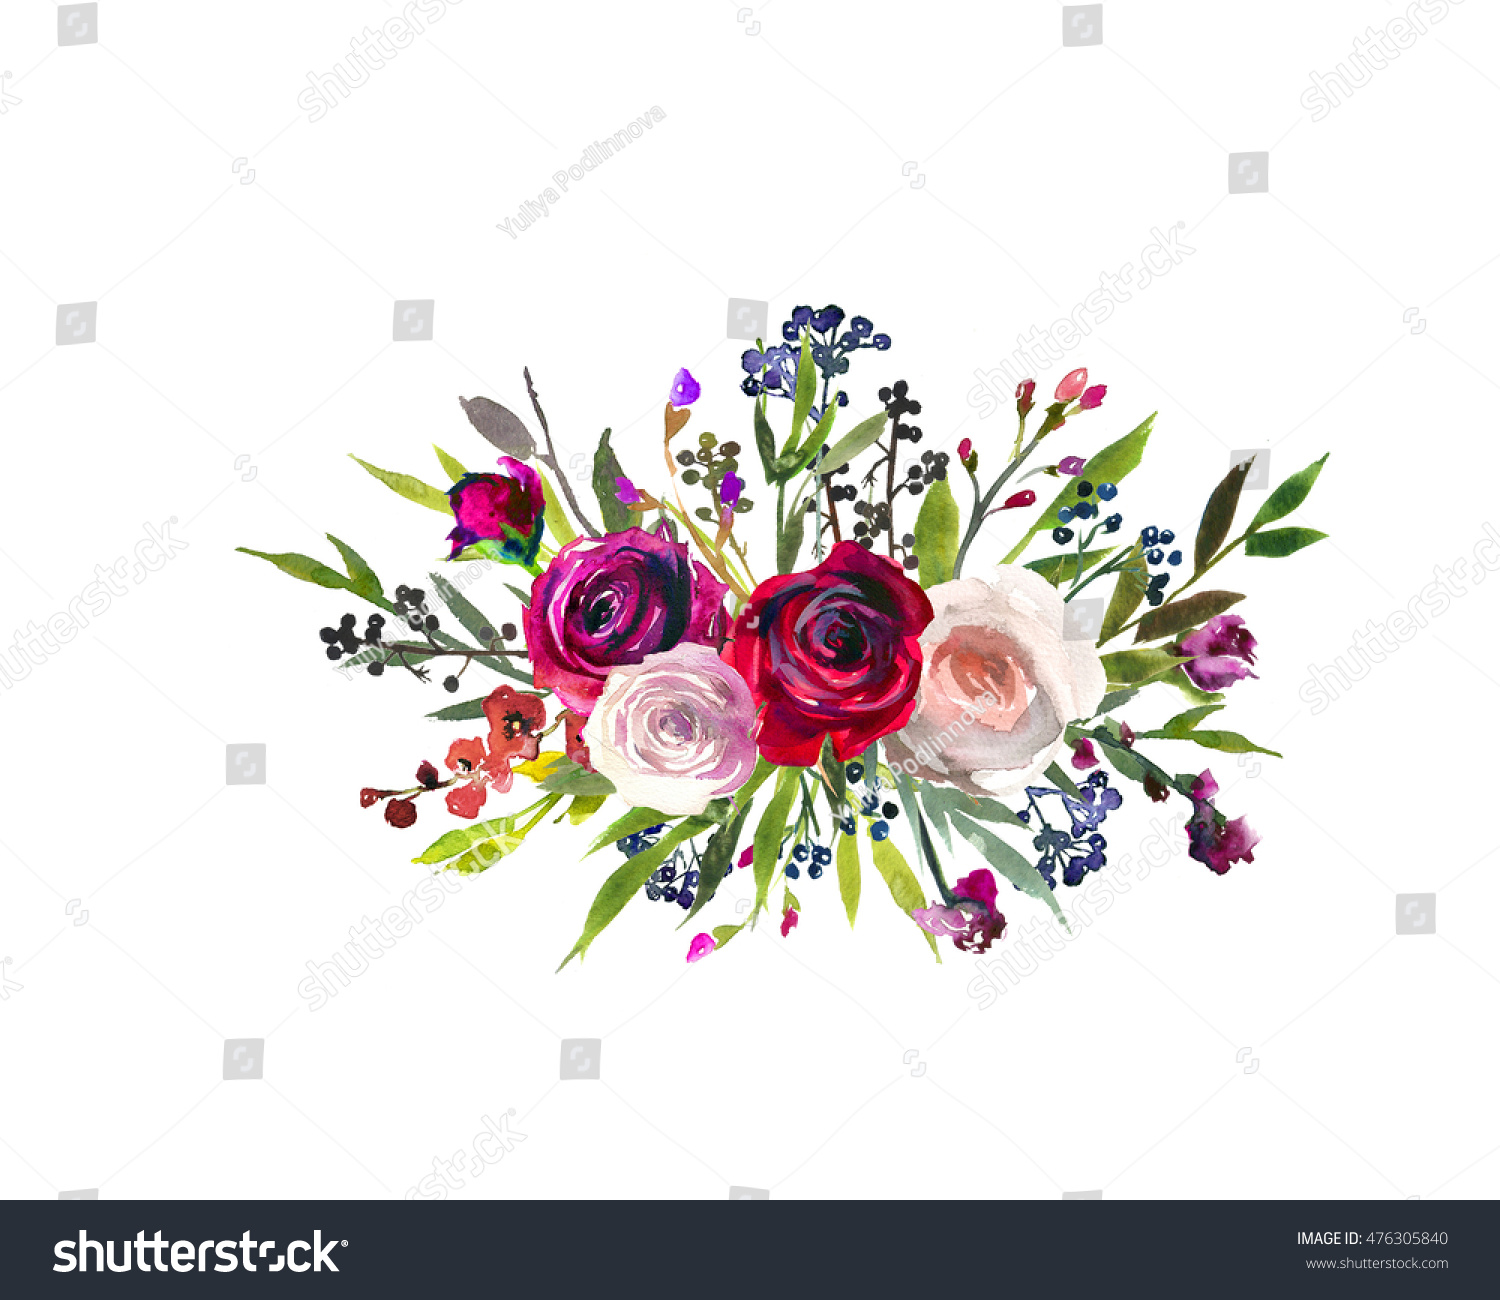 Royalty-free Floral bouquet burgundy red purple pink… #476305840 ...